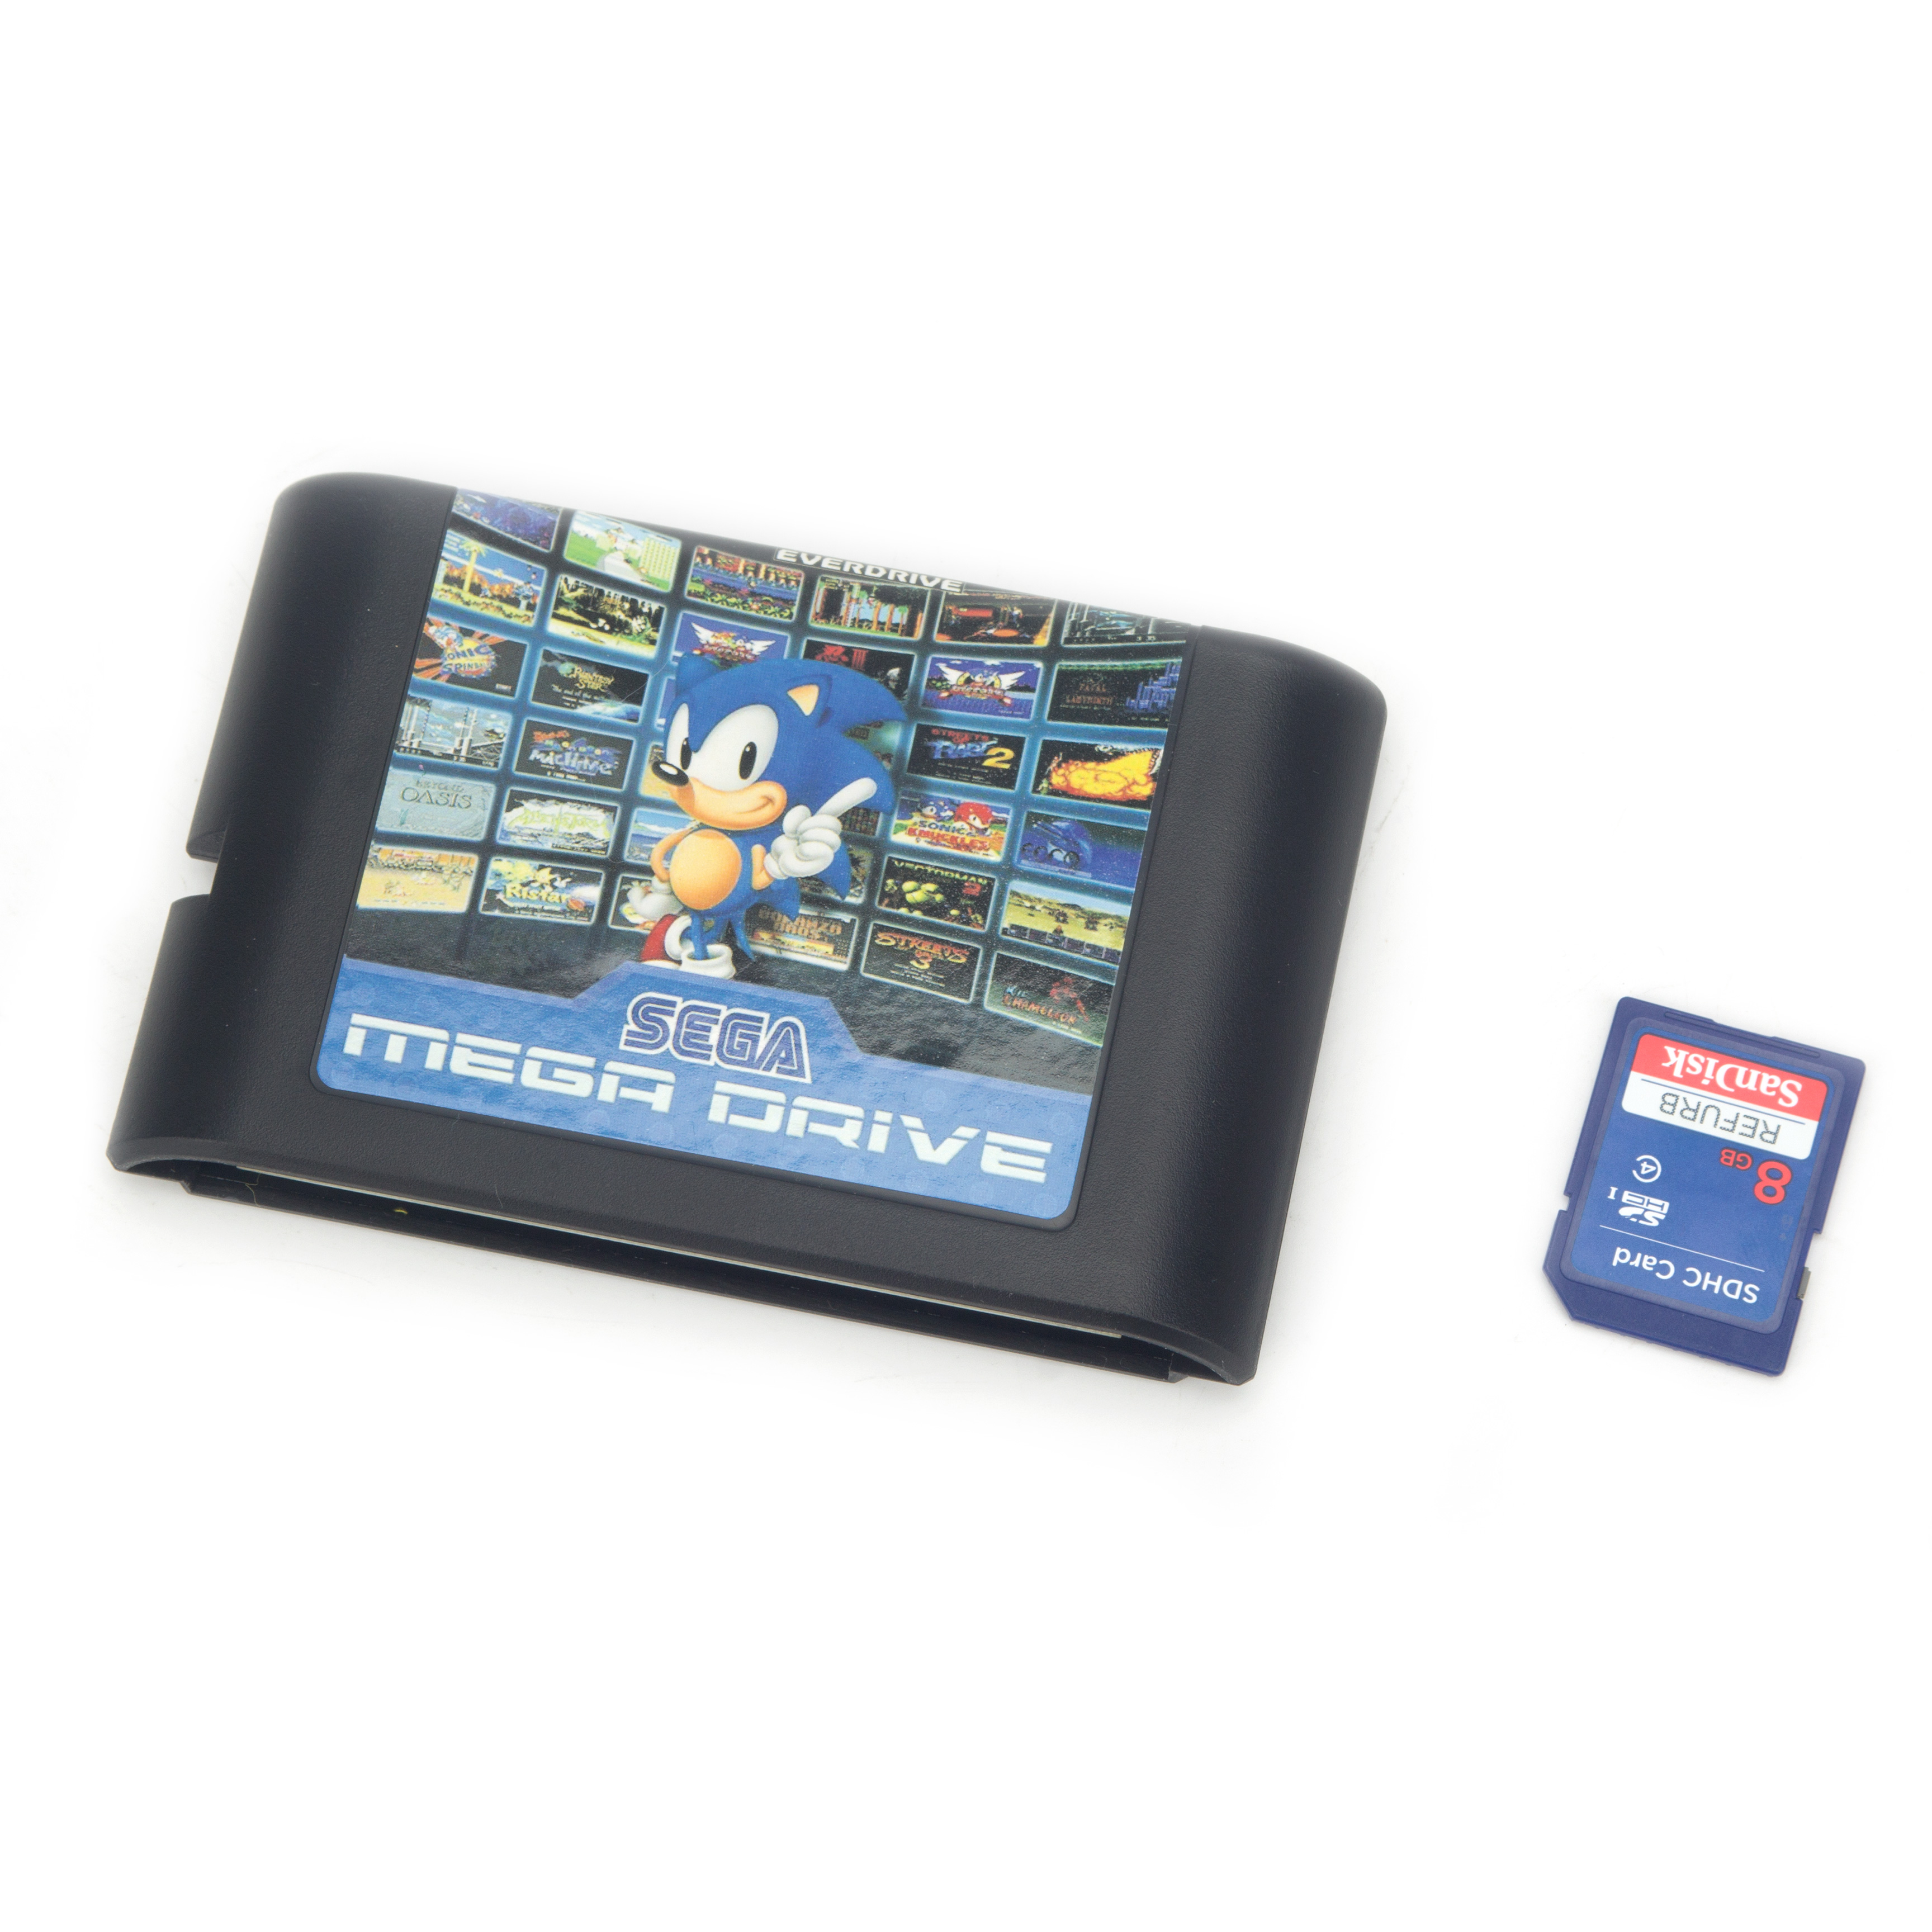 820 in 1 Game Cartridge 16 bit Game Card For Sega Mega Drive Genesis Game Cartridge Contra Gunstar Heroes Alien Soldier Streets game cartridge fire shark for 16 bit sega megadrive genesis game console